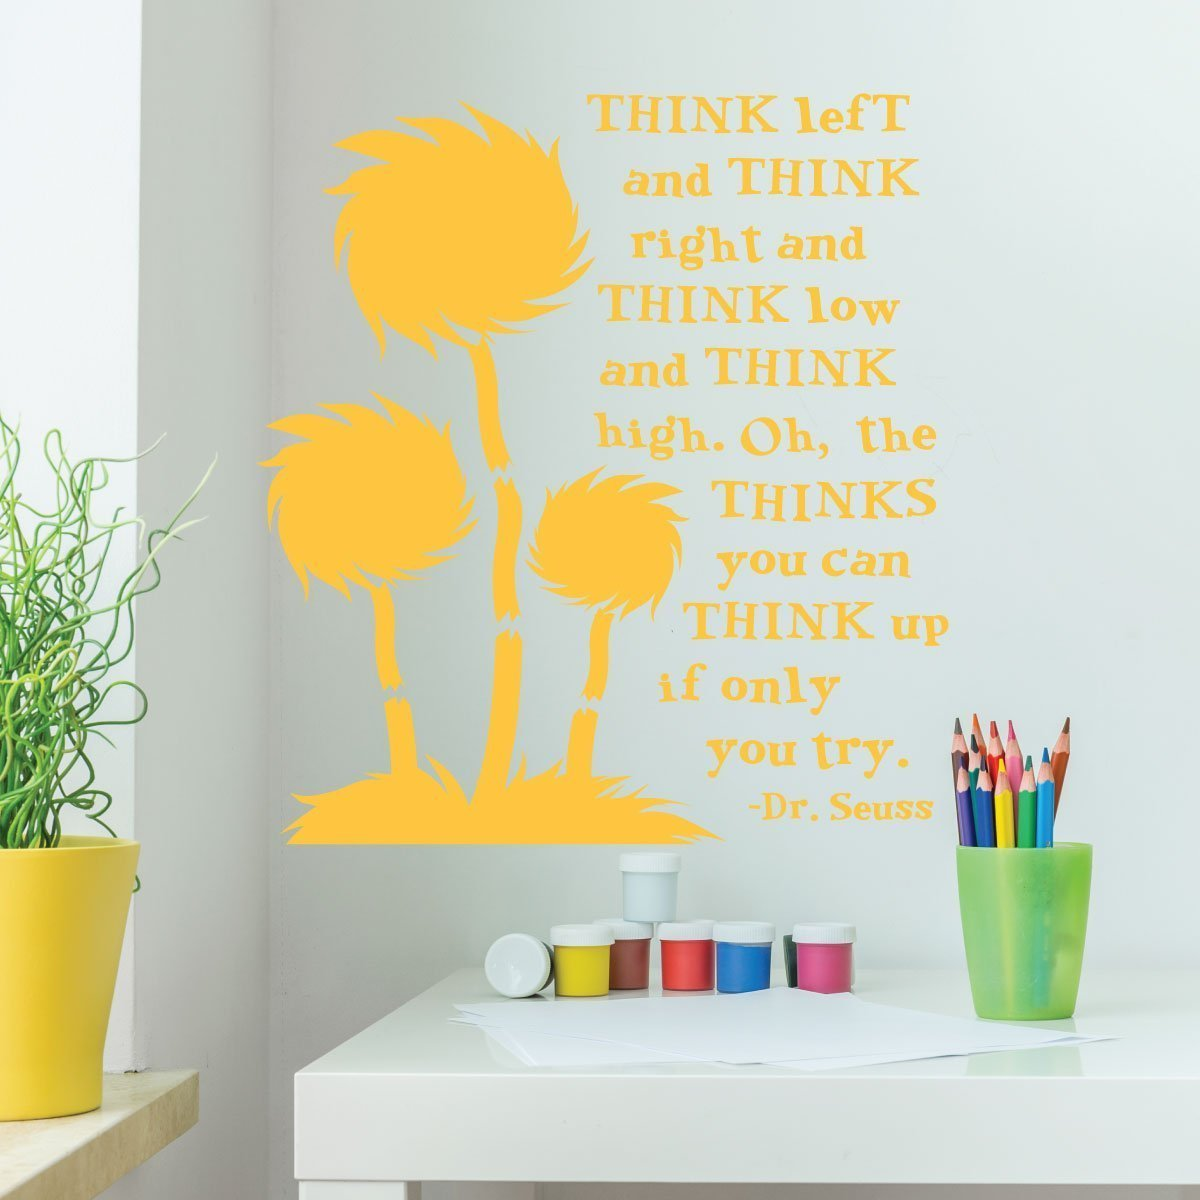 Dr. Seuss Wall Decor for Classrooms-Think Left And Think Right And ...